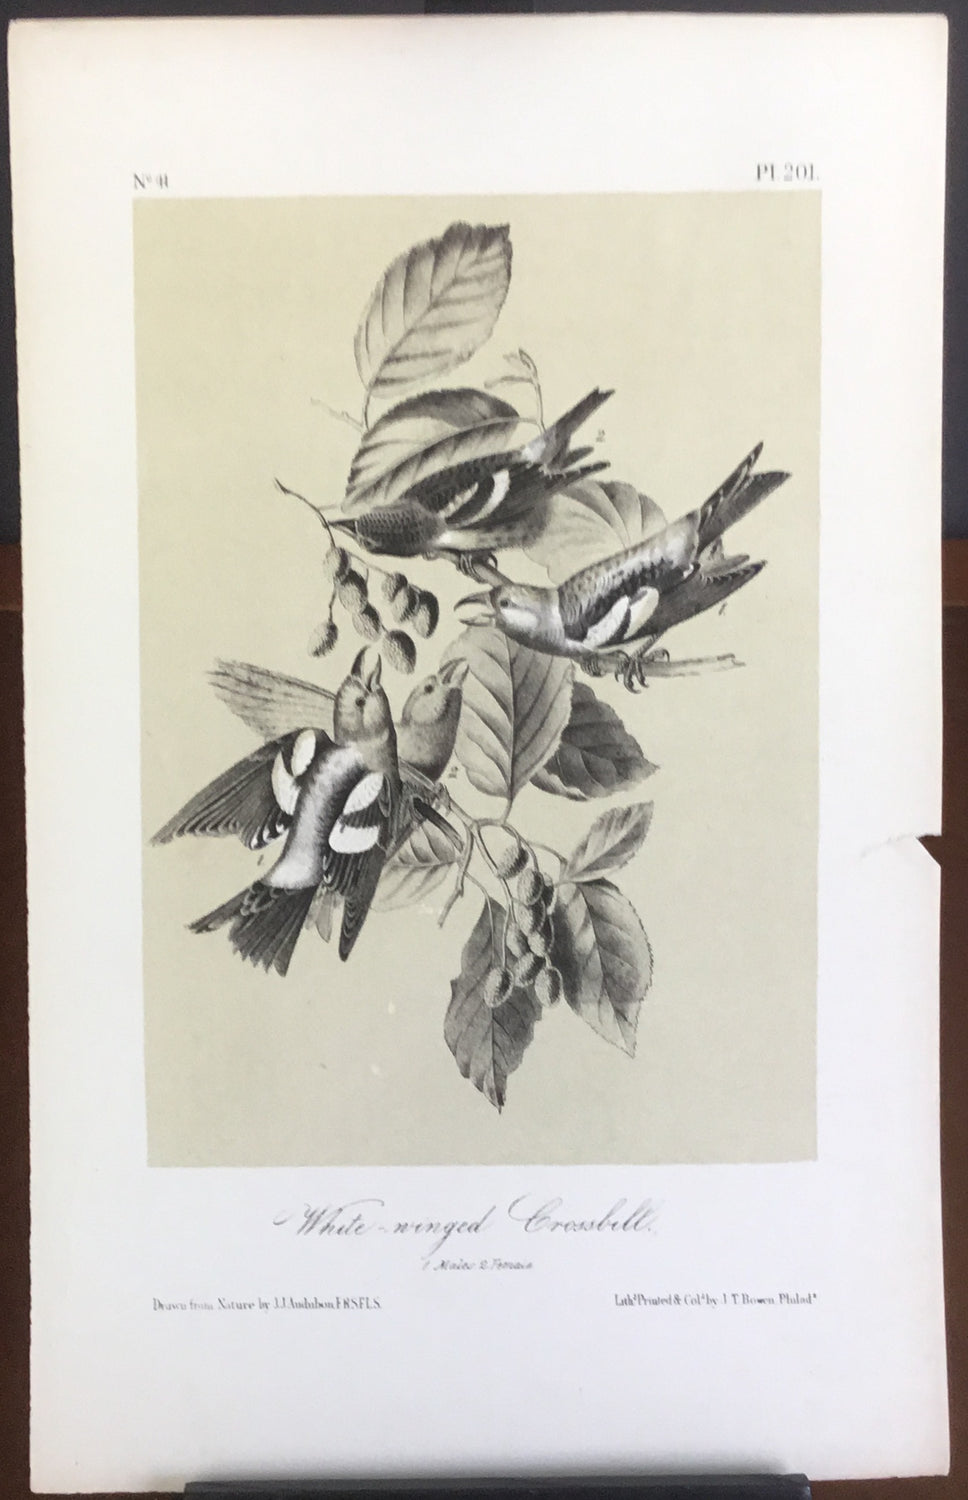 Audubon Octavo White-winged Crossbill (2), plate 201, uncolored test sheet, 7 x 11